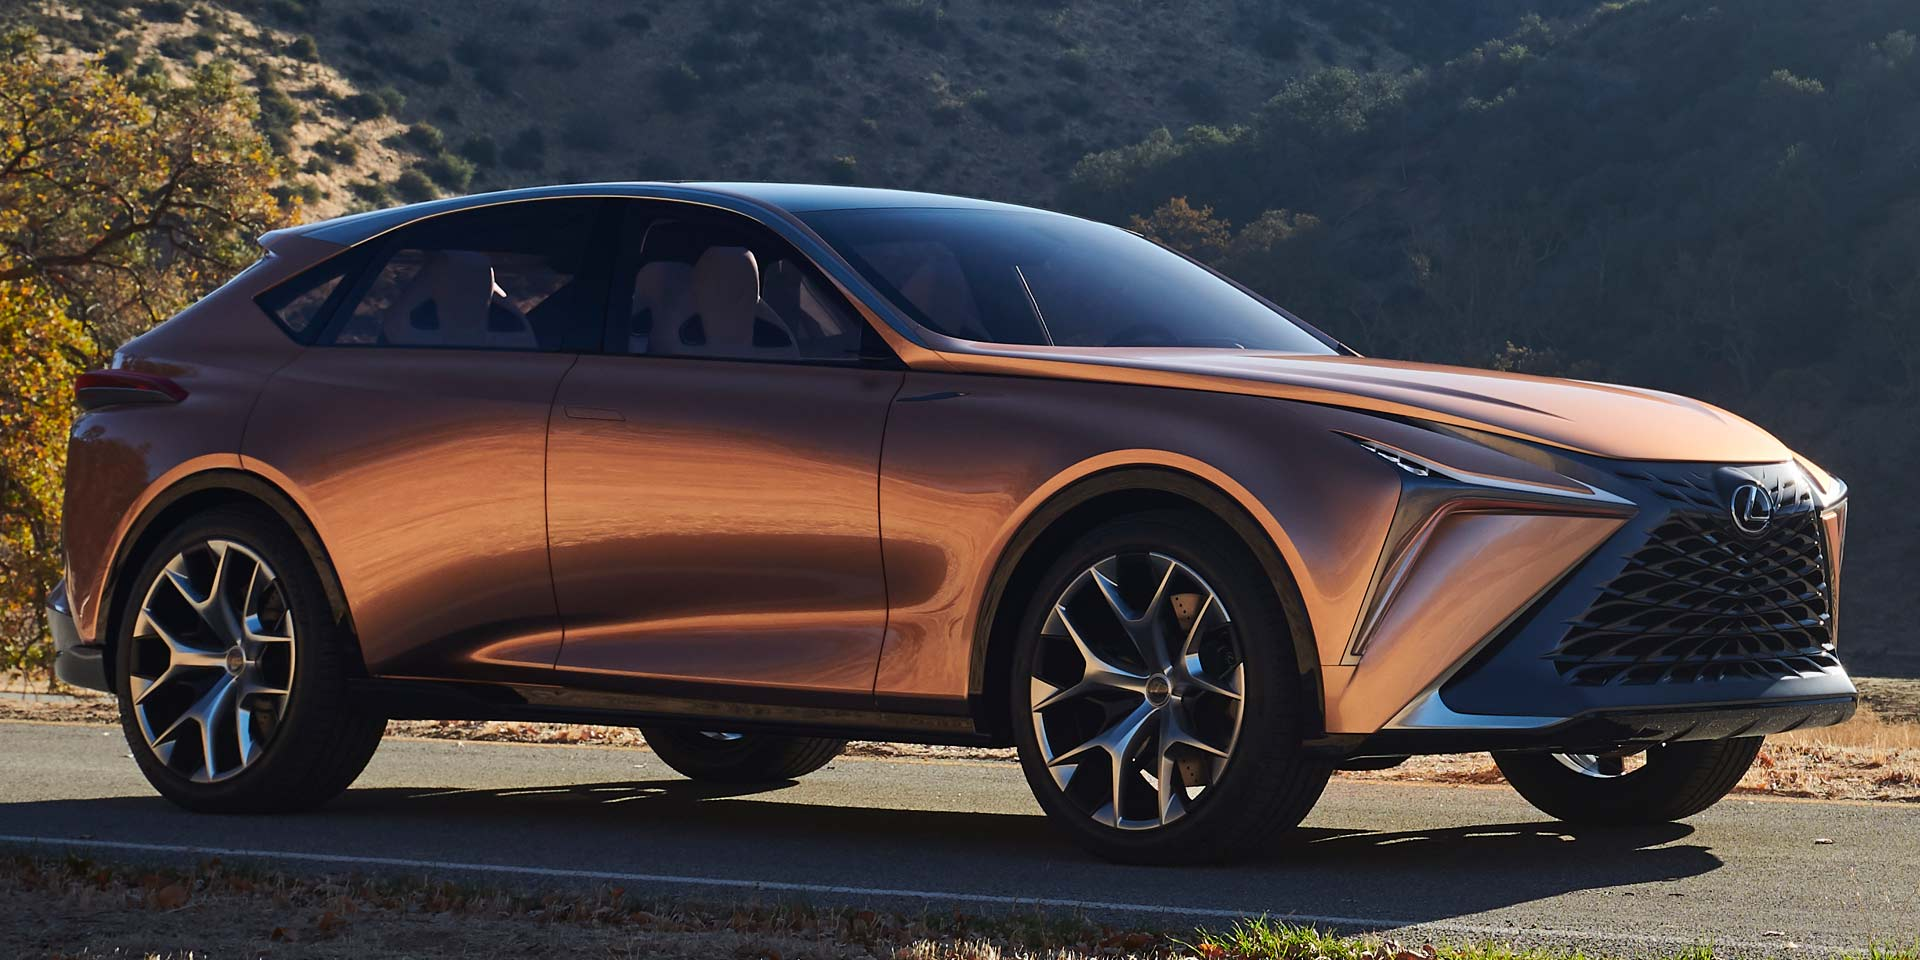 The Lexus LF 1 Concept Is A Prototype That Brings To Life Lexusu0027 New Design  Language For Future Generations. The Luxury Crossover Is Said To Be A  Futuristic ...